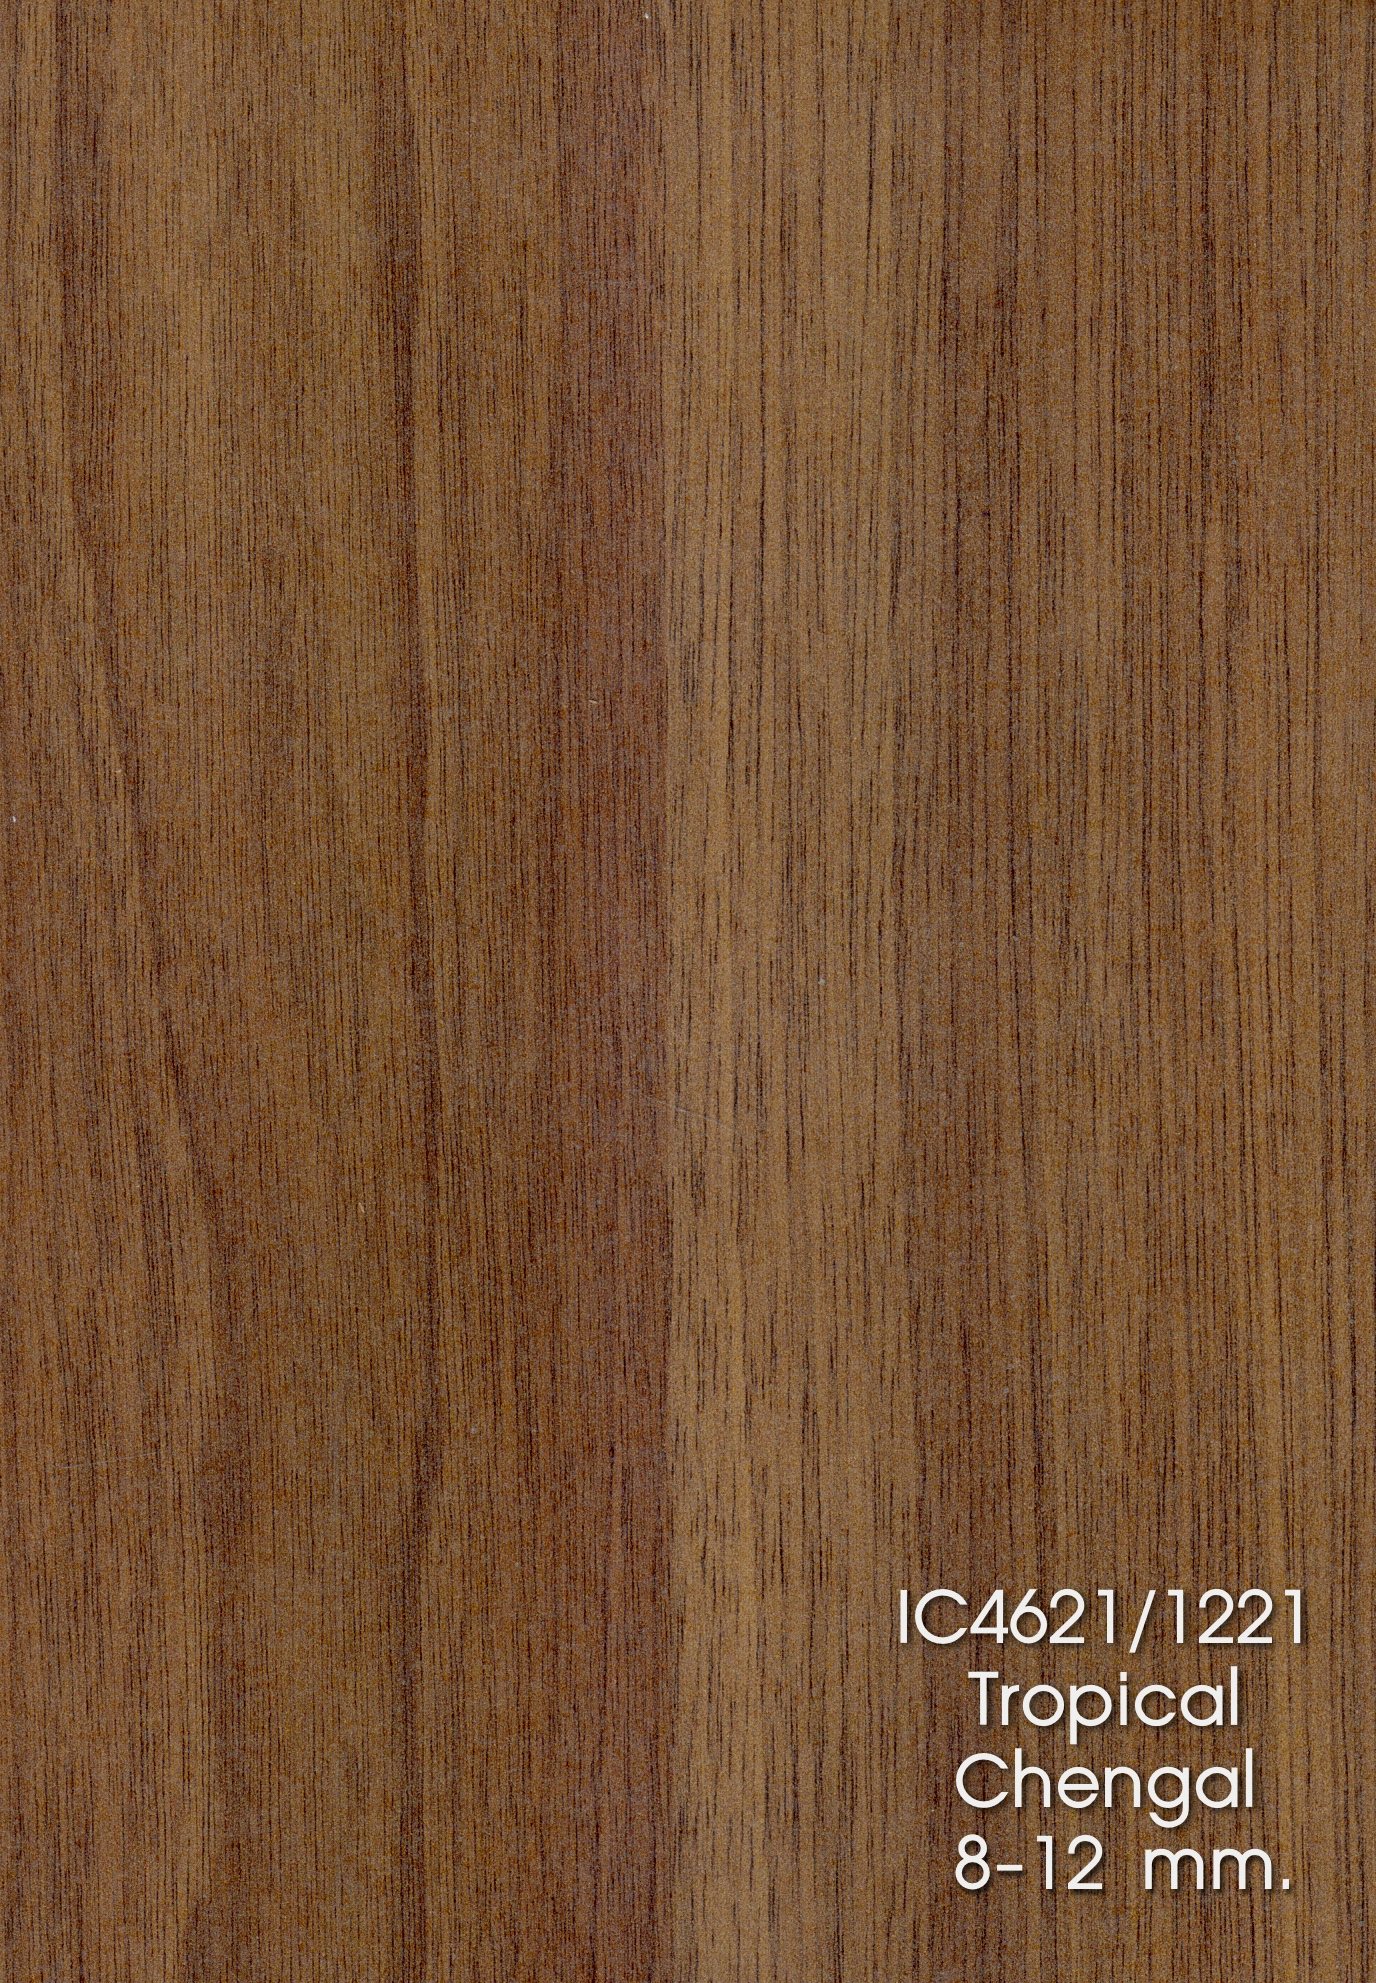 IC4621/1221 LAMINATE ICON 8-12 mm.